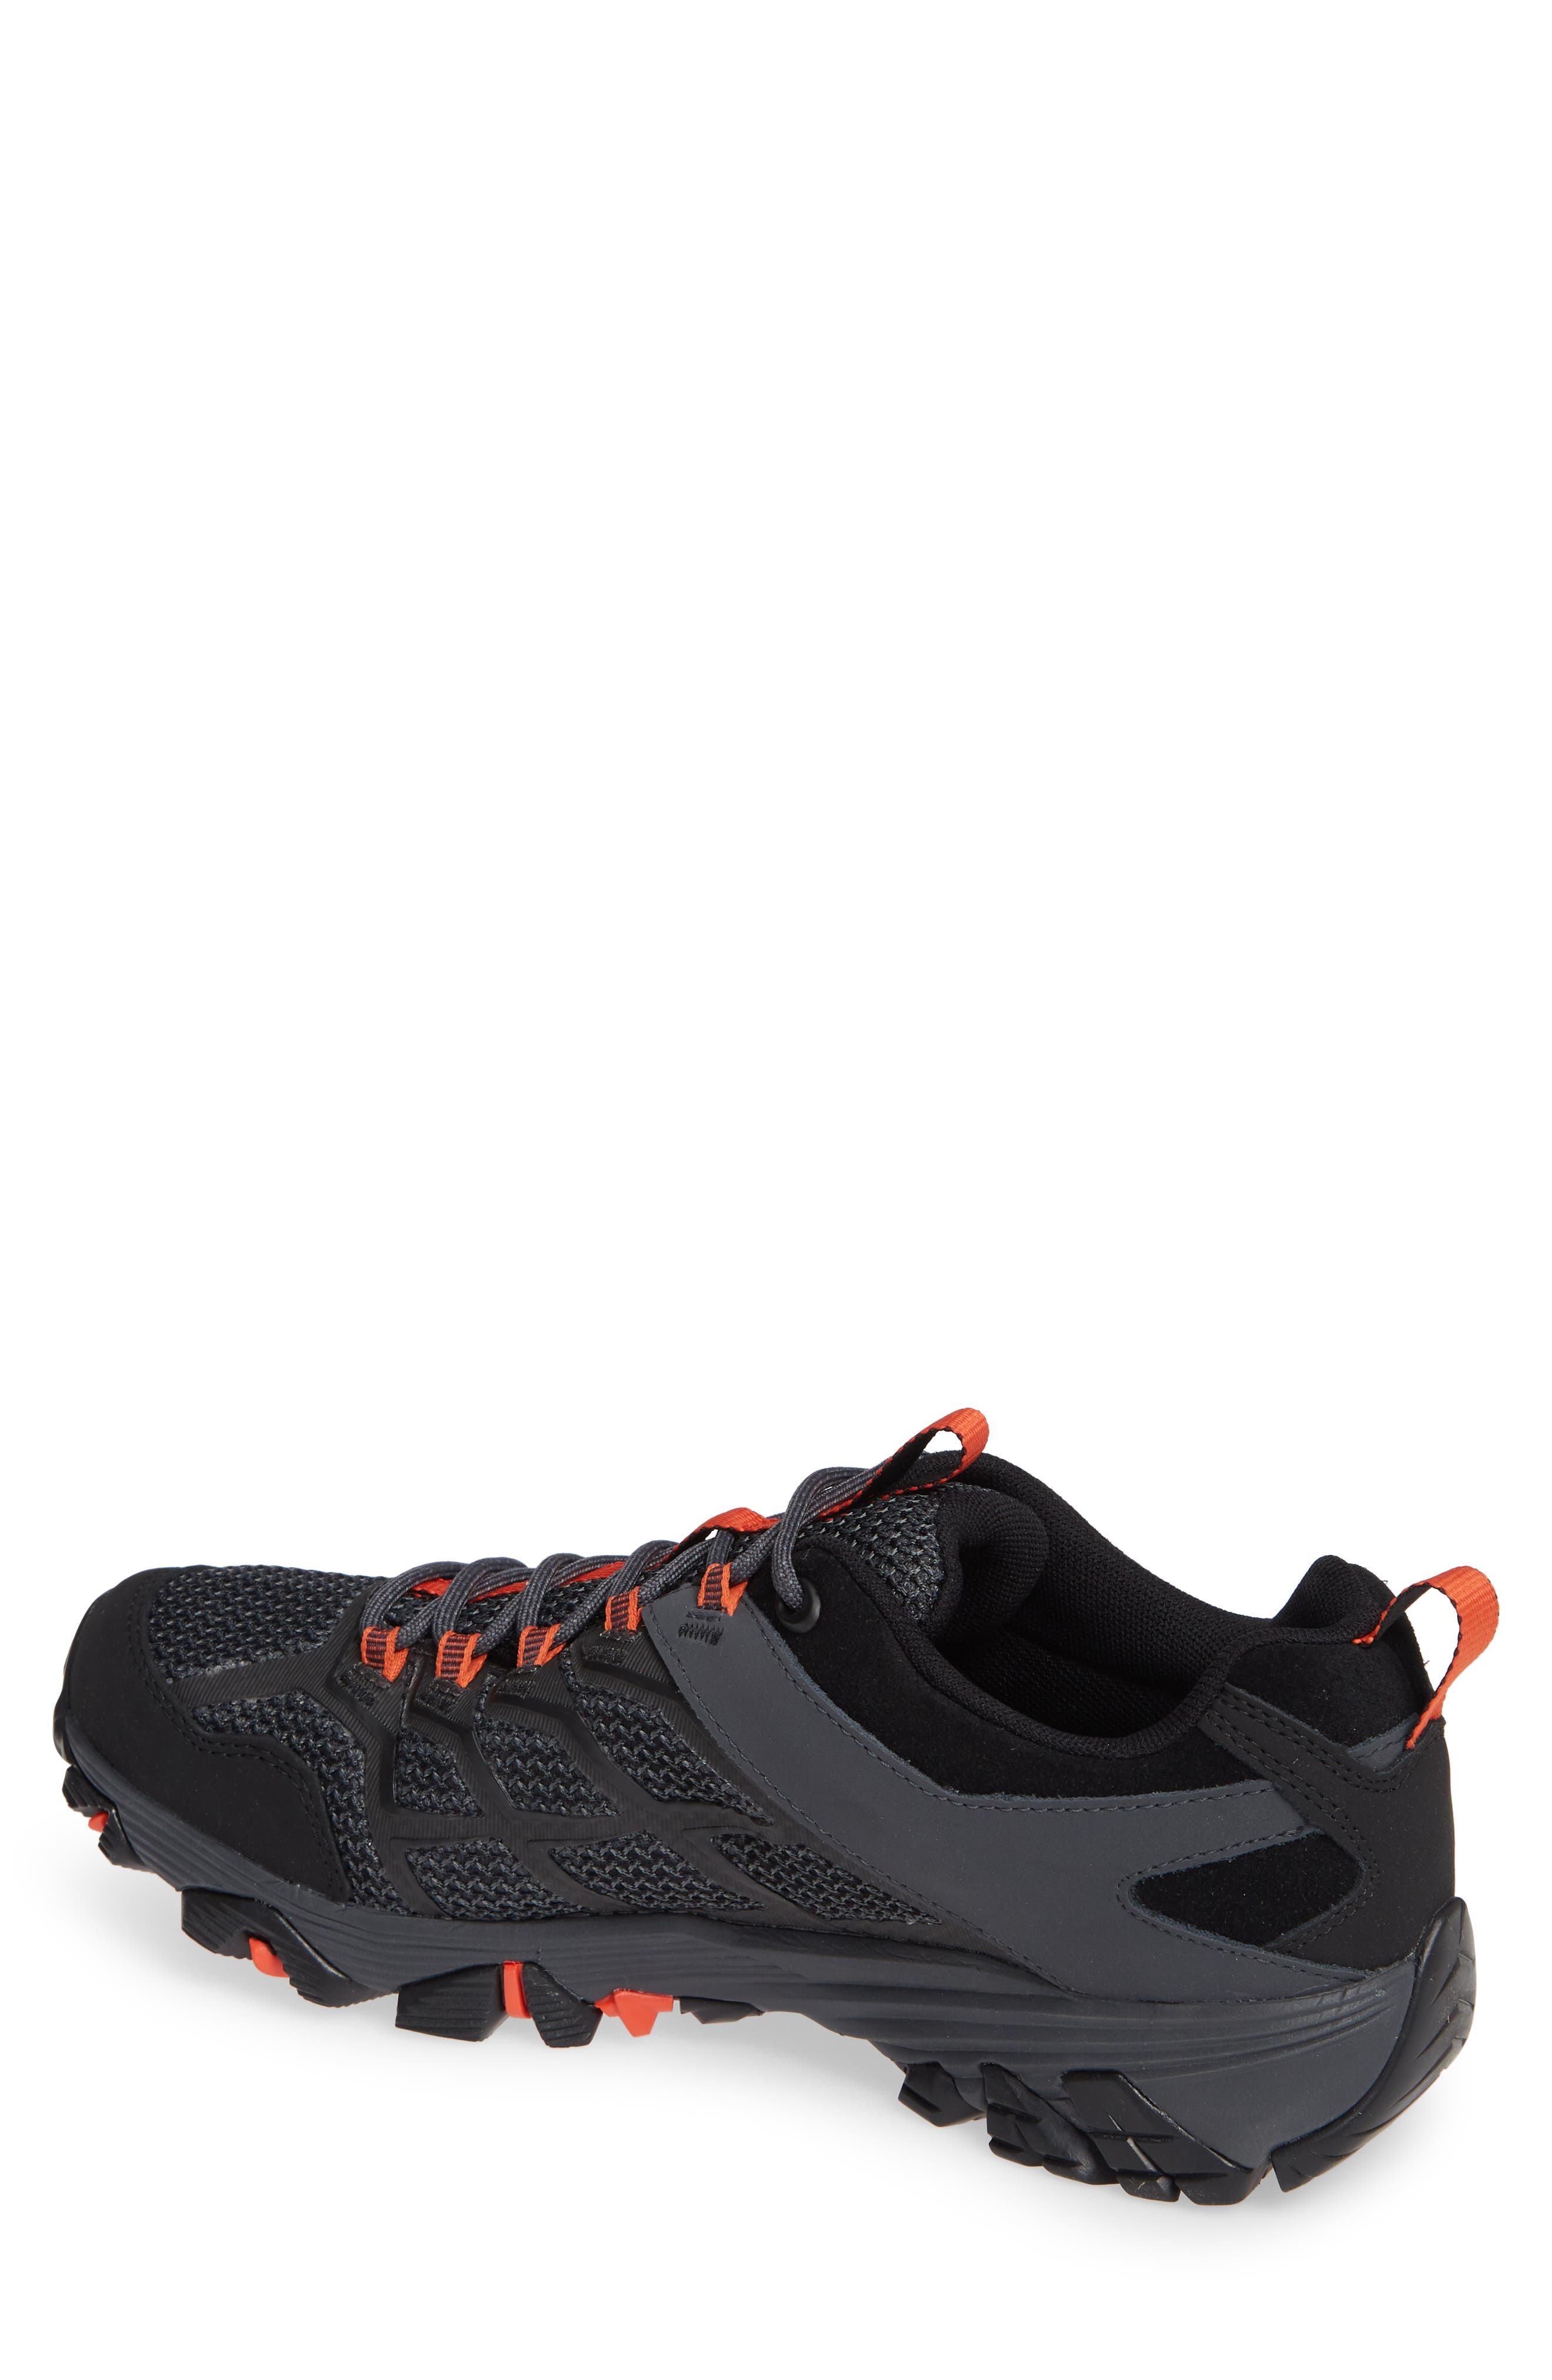 Moab FST 2 Waterproof Hiking Shoe,                             Alternate thumbnail 2, color,                             001